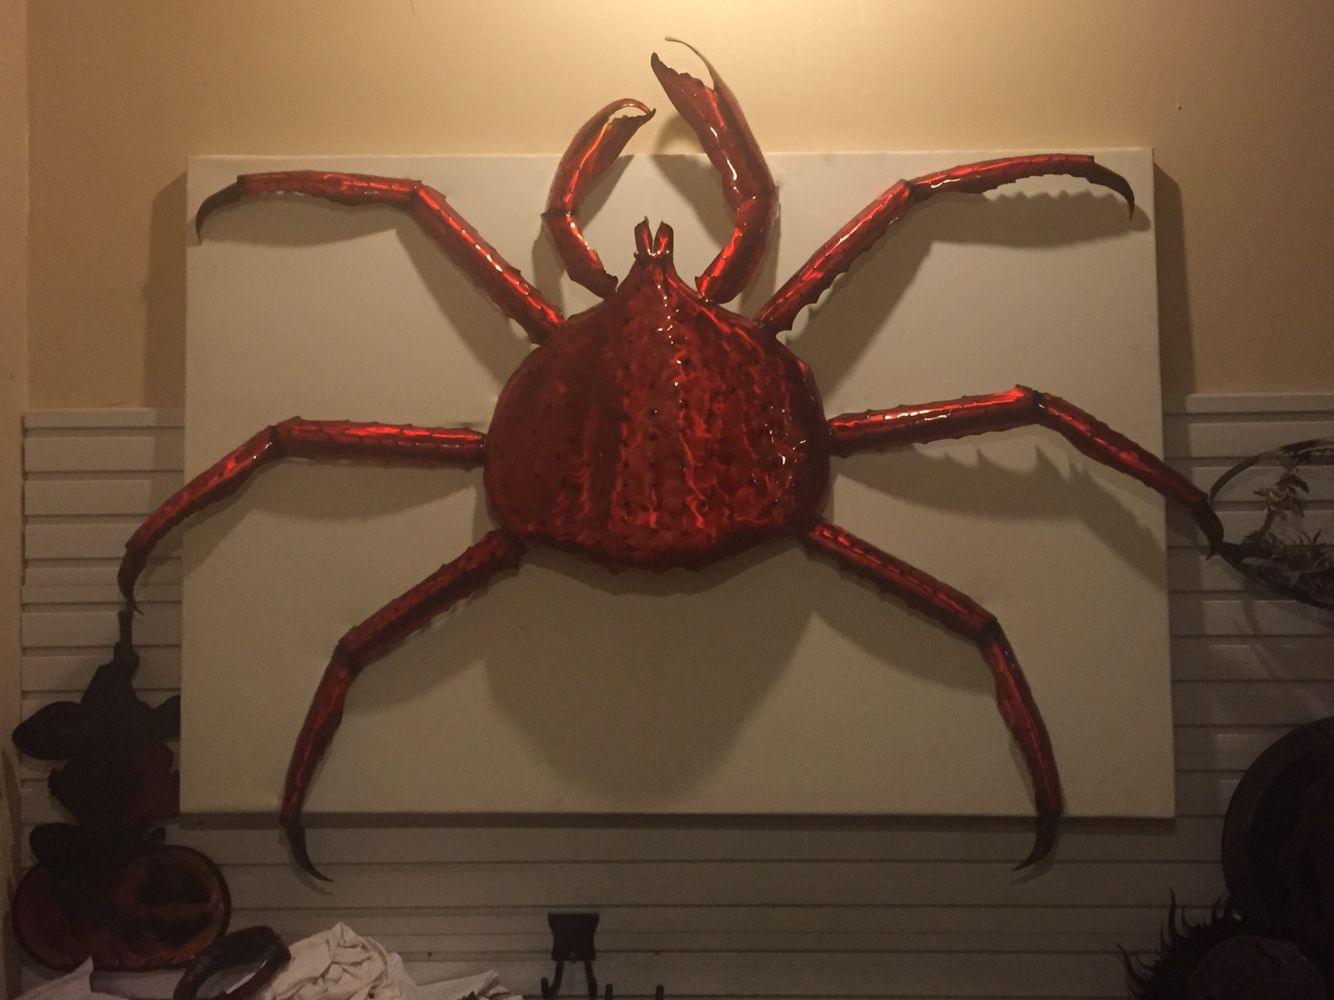 Monster king crab. Plasma cut hand and hammer formed out of 1/8 aluminum plate. Air brushed with dyes. Mounted on 5' x 4' vinyl frame